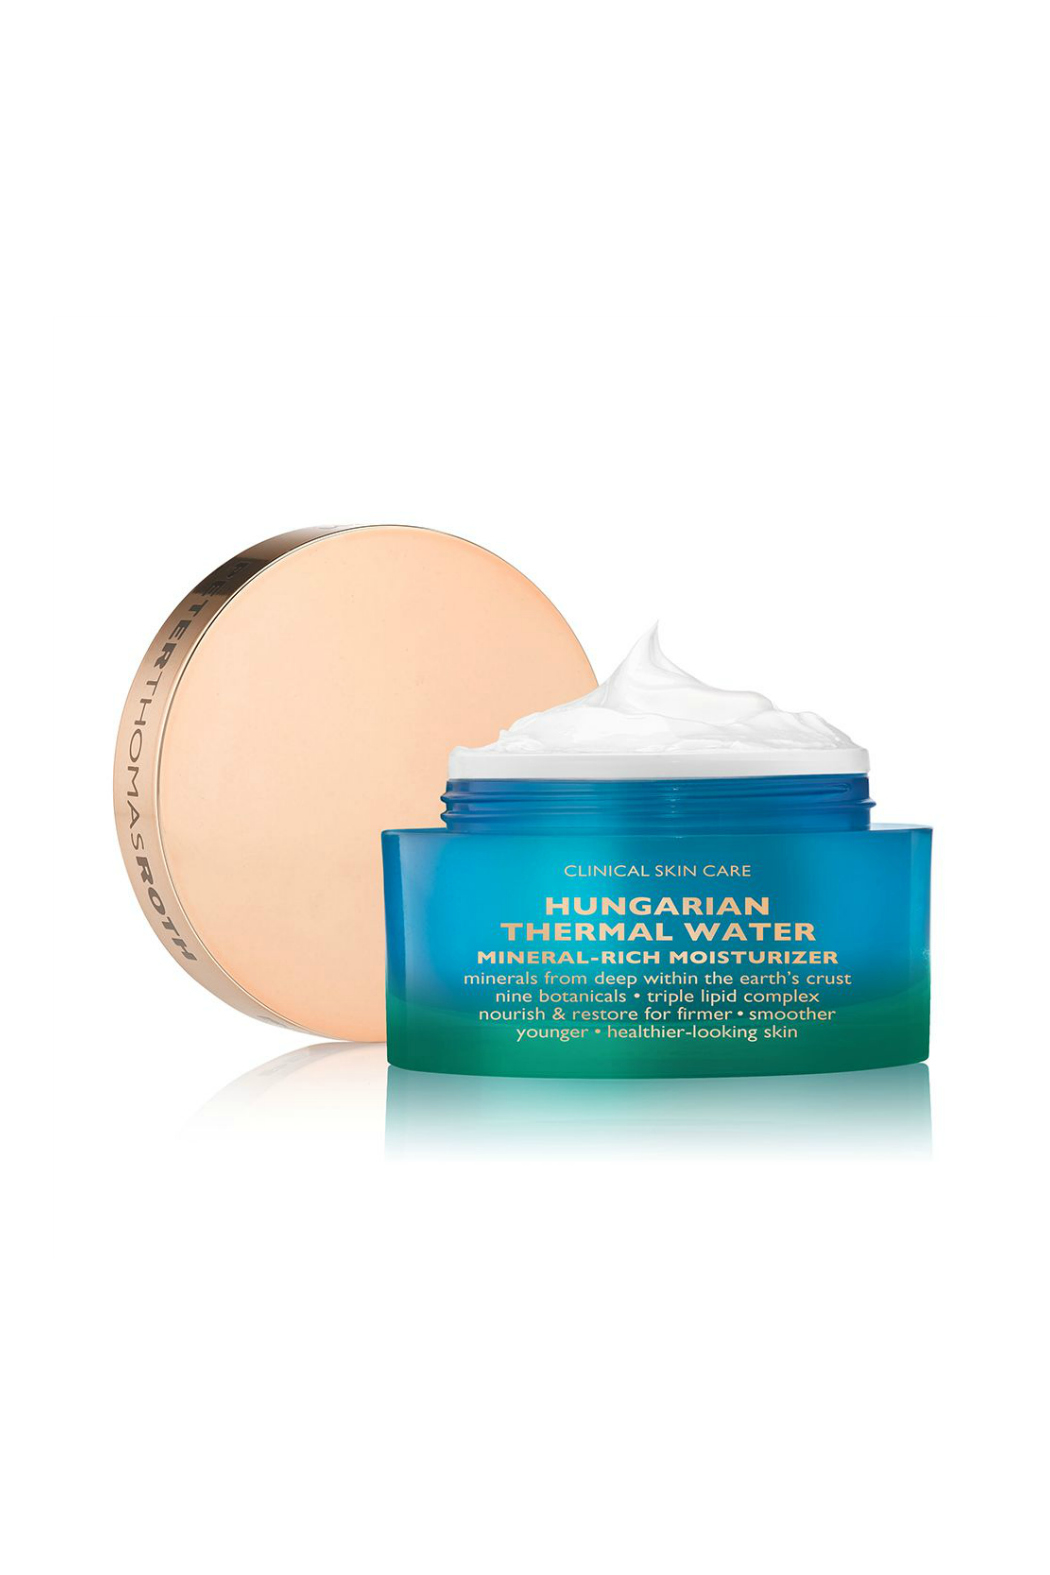 Peter Thomas Roth HUNGARIAN THERMAL WATER MINERAL-RICH MOISTURIZER - Main Image